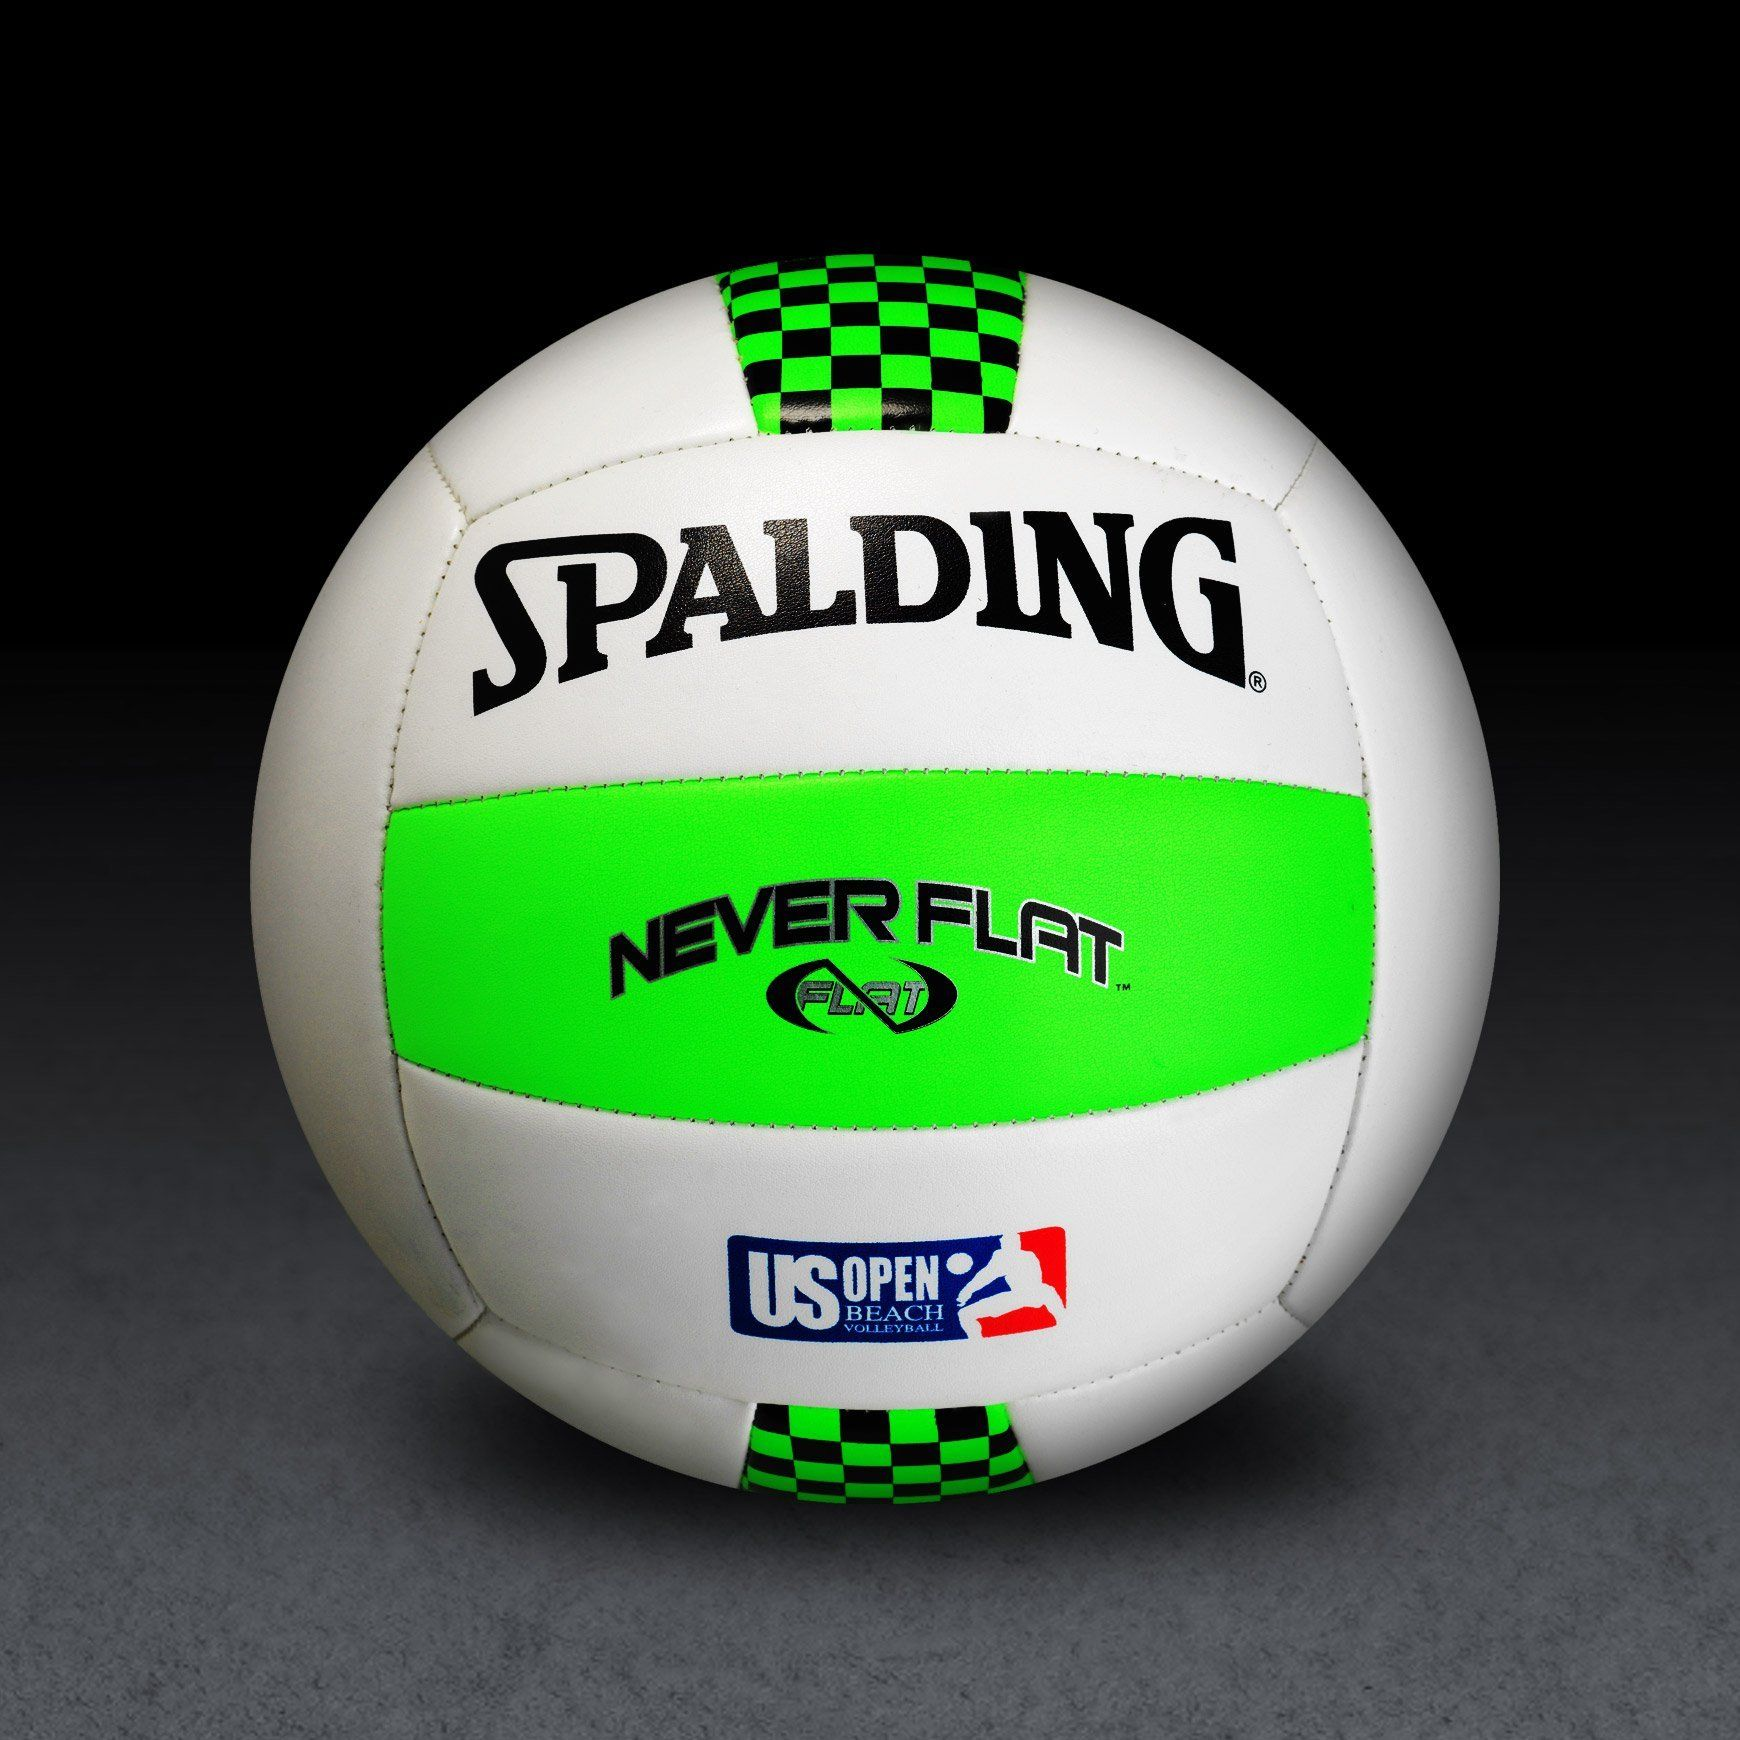 Spalding Neverflat Us Open Green White Volleyball All Volleyball Volleyballs Fun Sports